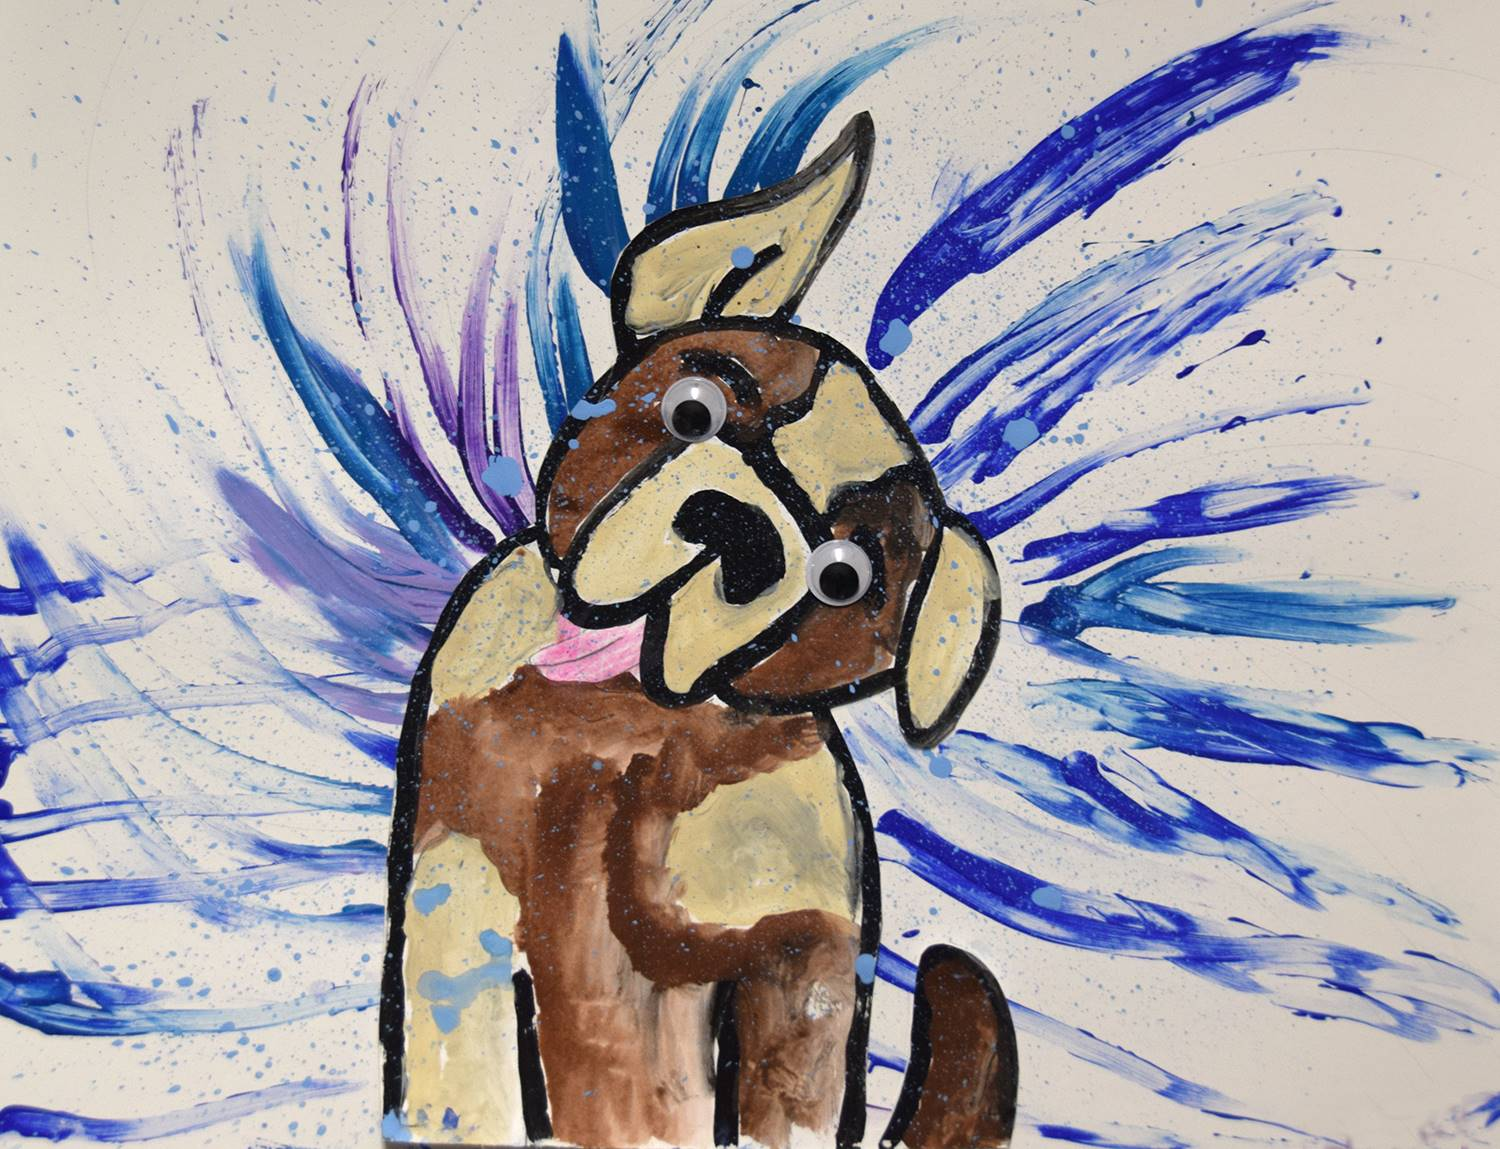 A tan and brown bull dog shaking water off of himself, by Anthony, Glenwood Elementary School.